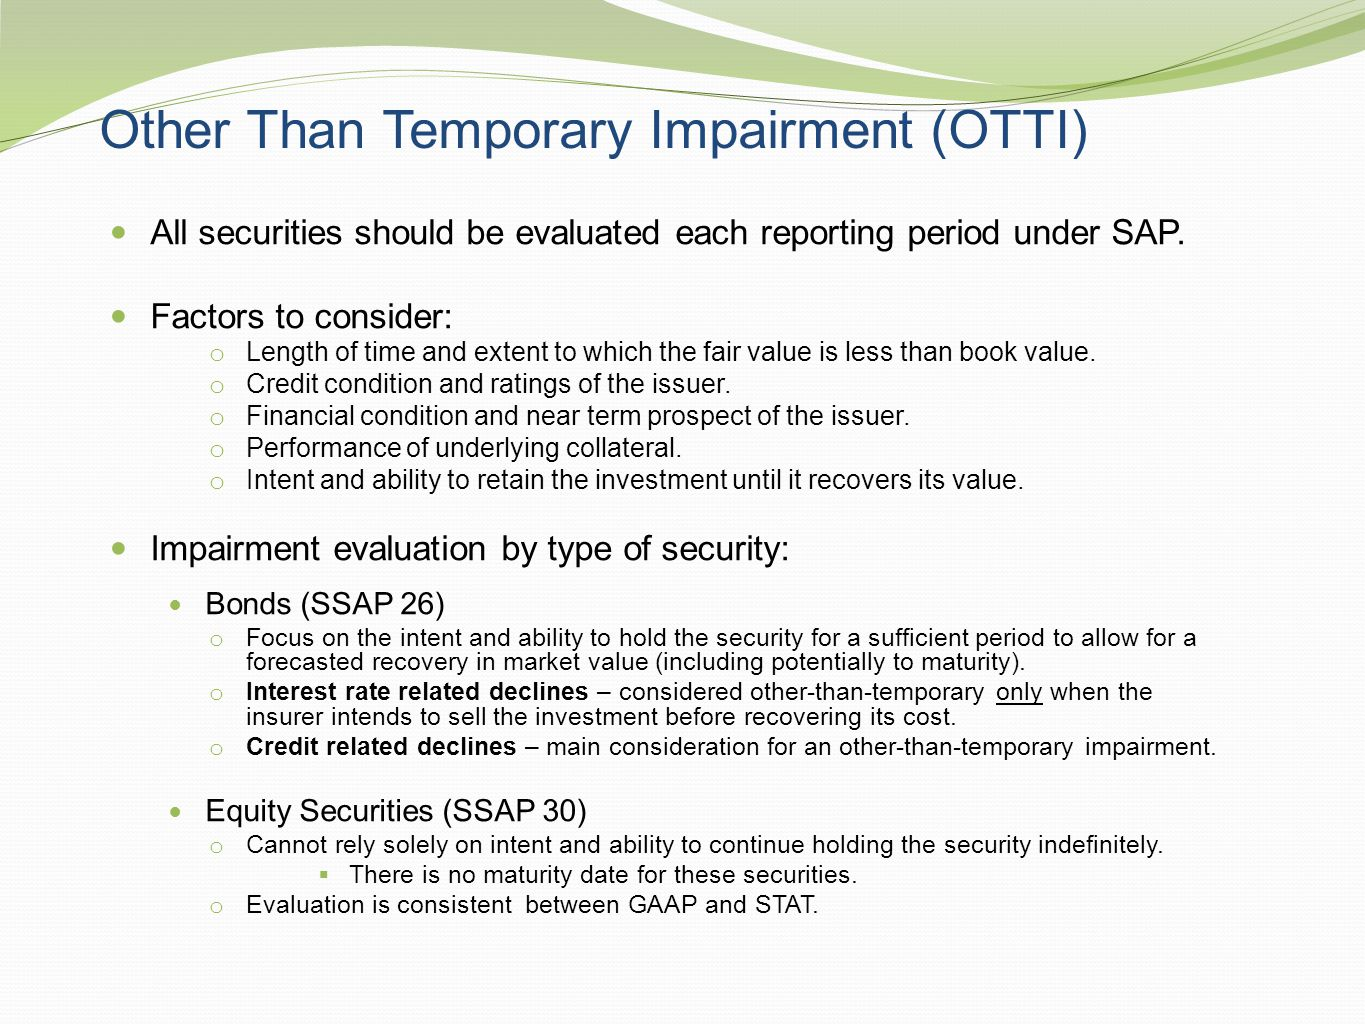 Other Than Temporary Impairment (OTTI)